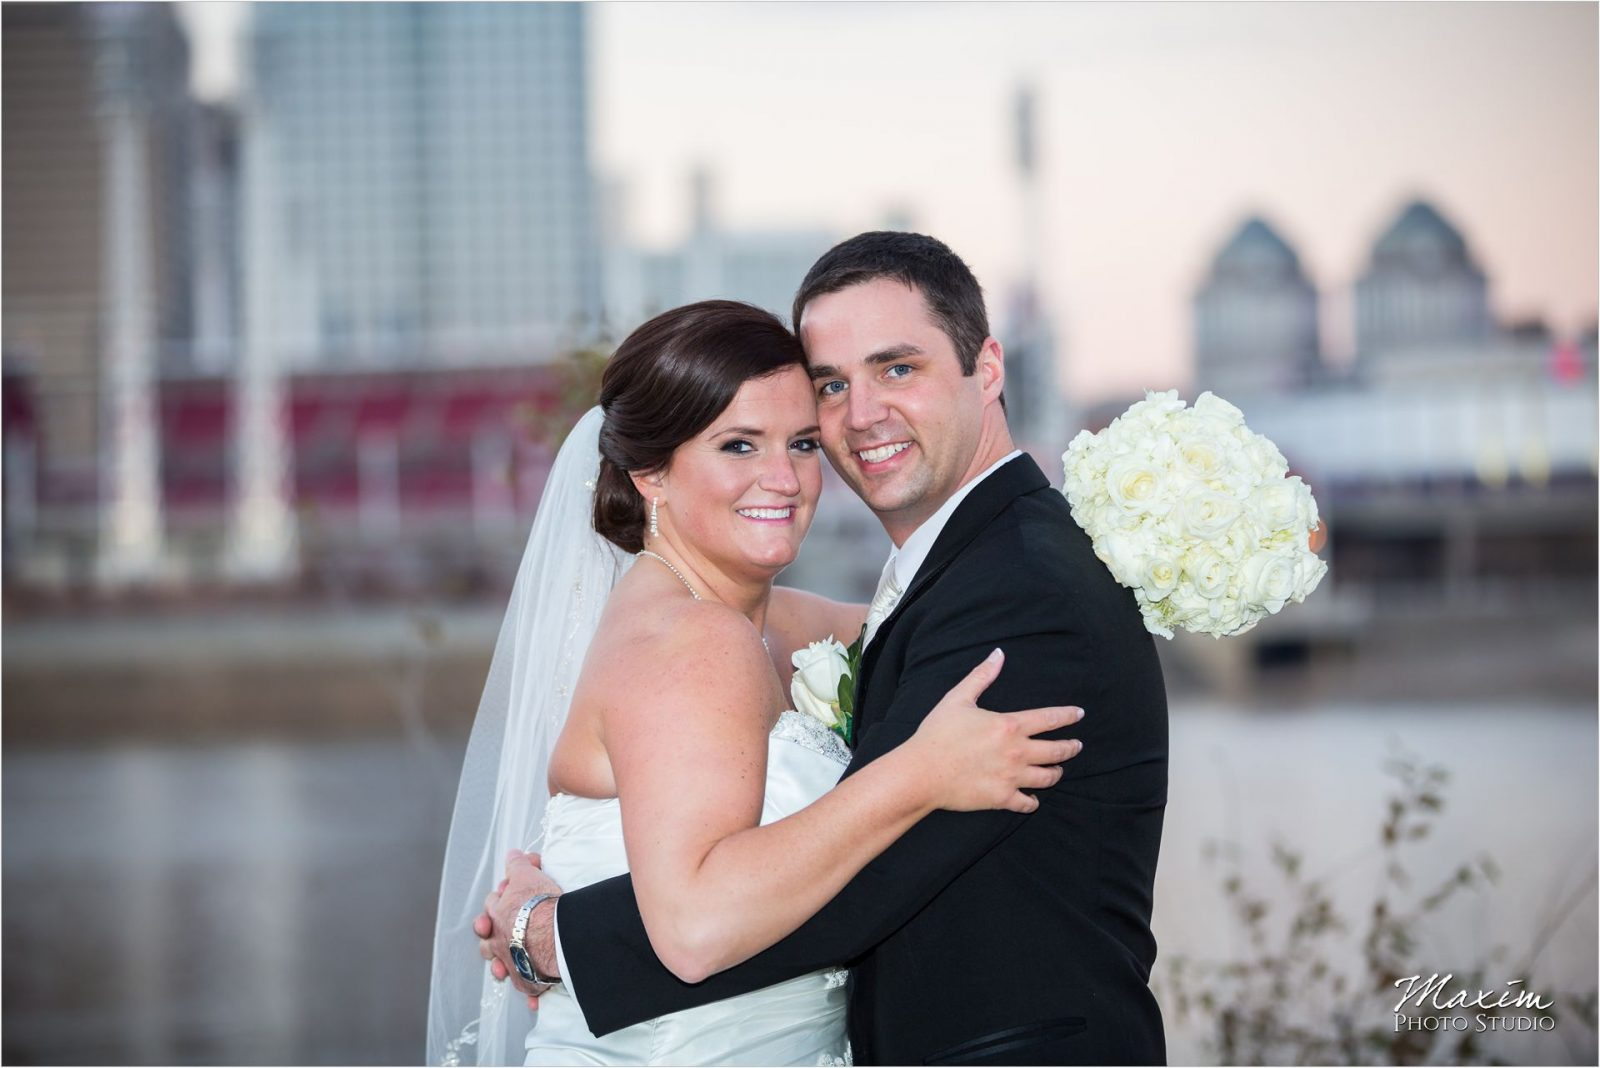 Hyatt Cincinnati Wedding Bride Groom